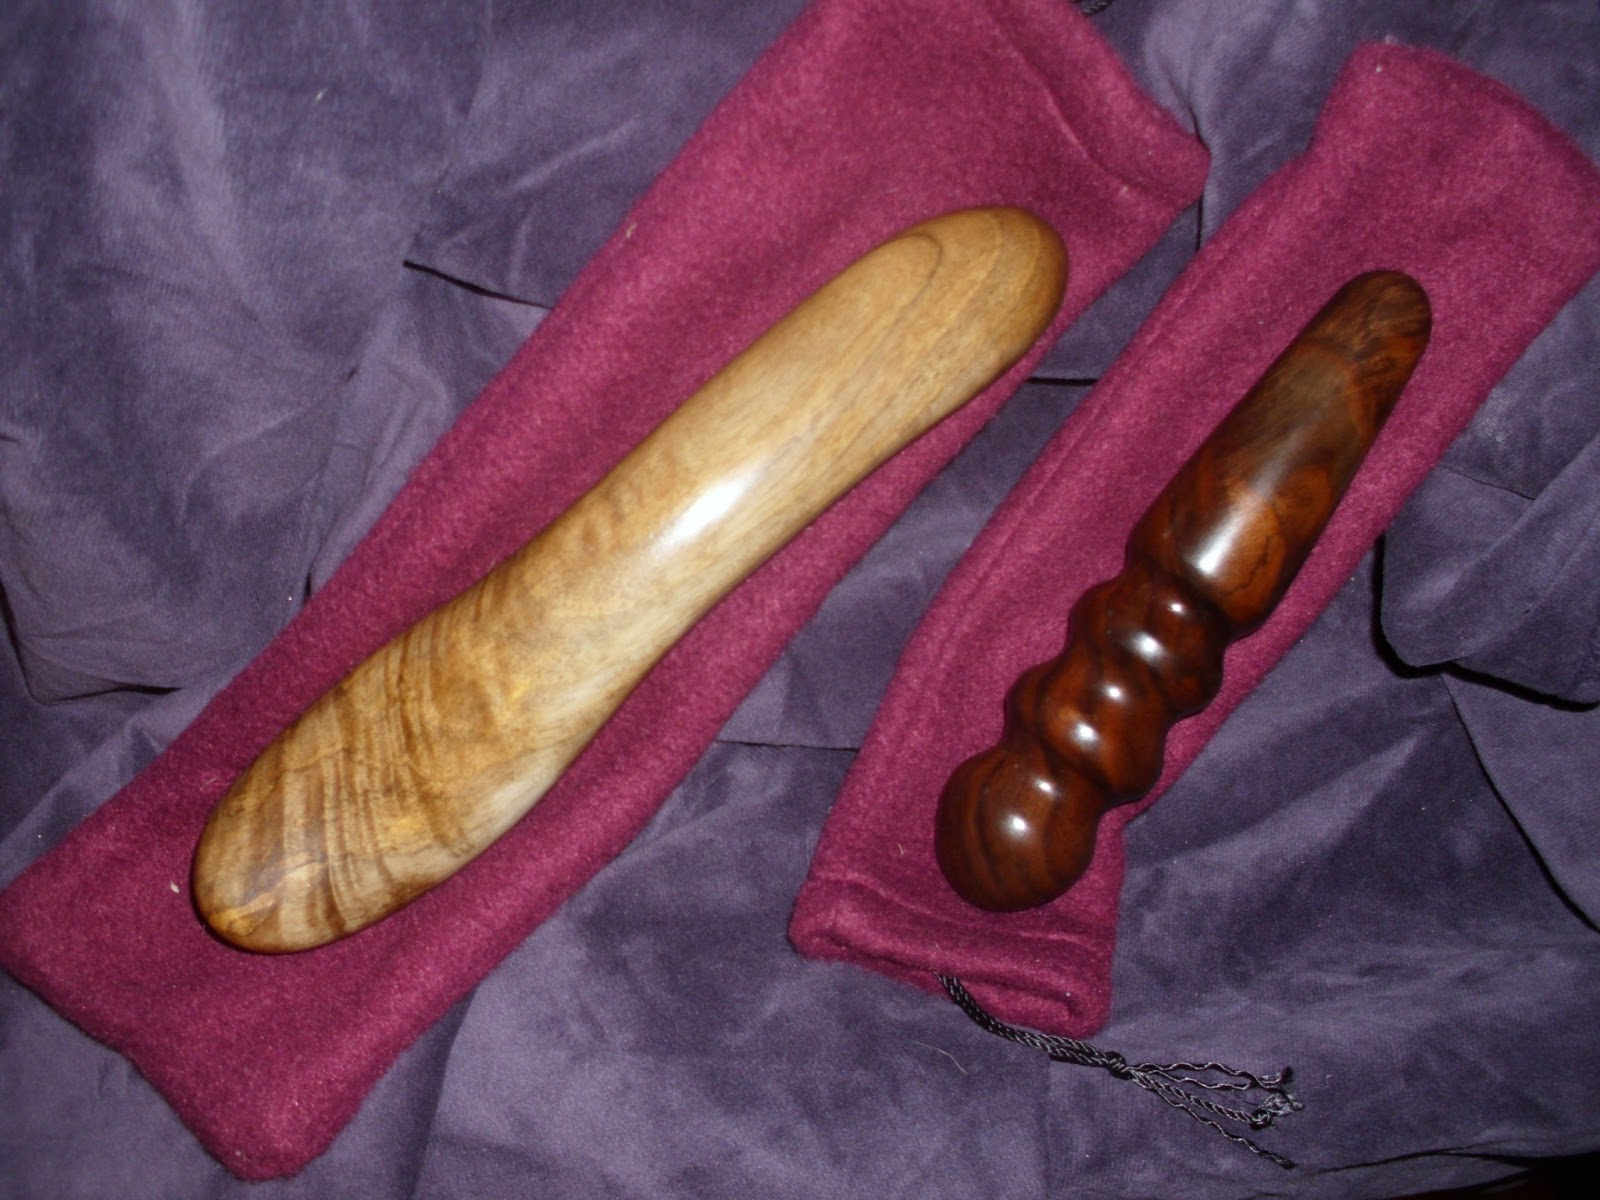 Wooden spoon dildo